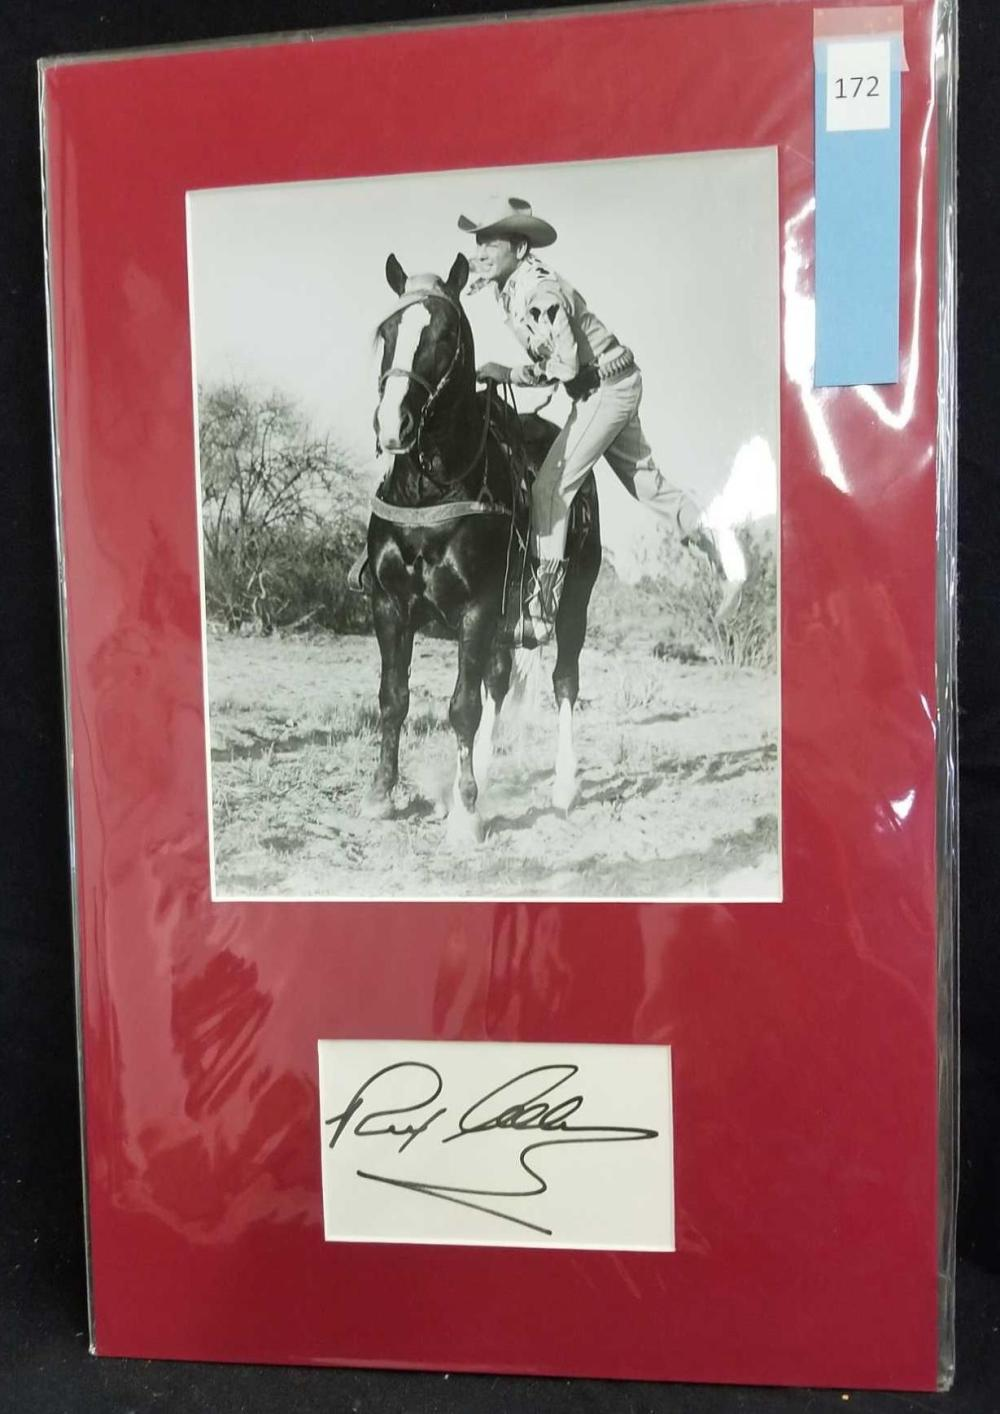 REX ALLEN BLACK & WHITE PUBLICITY PHOTO W/ SIGNATURE CARD